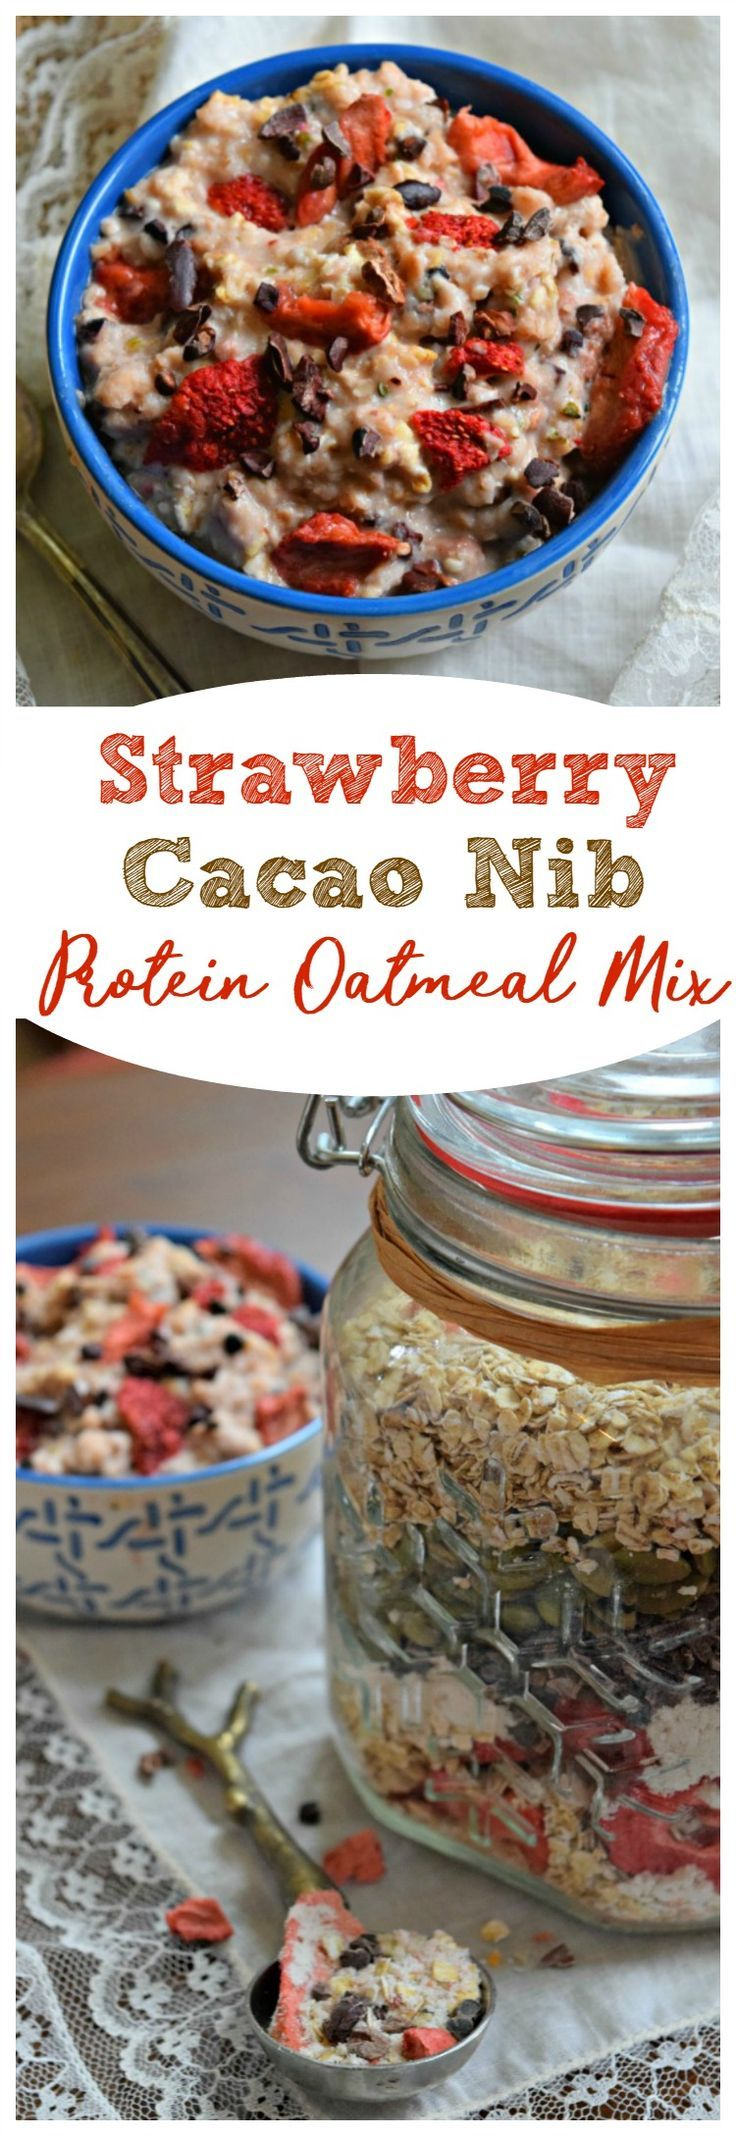 Strawberry Cacao Nib Protein Oatmeal Mix can be prepped ahead of time and kept in the pantry for months. Just add water or milk and microwave for one minute for a quick and nutritious breakfast for busy weekdays.